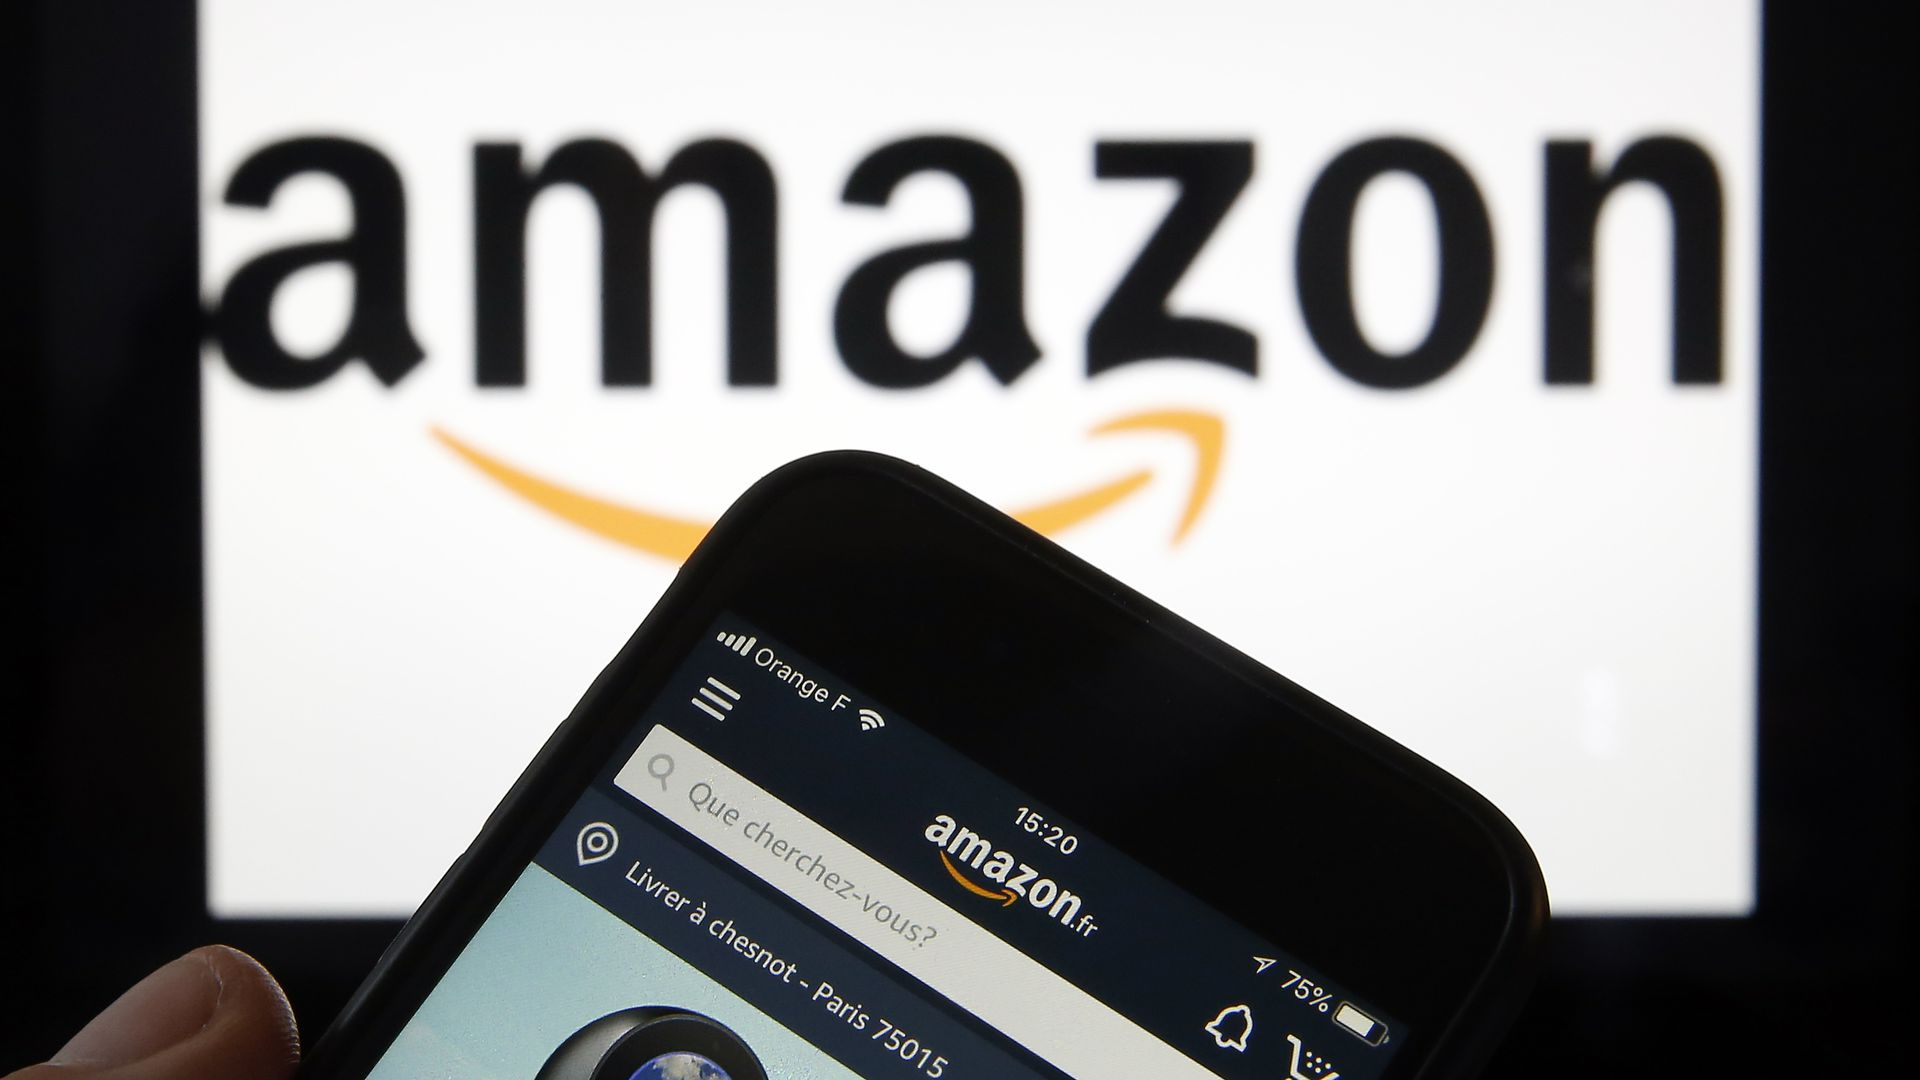 Amazon's logo in the background with the Amazon website on a phone in the foreground.